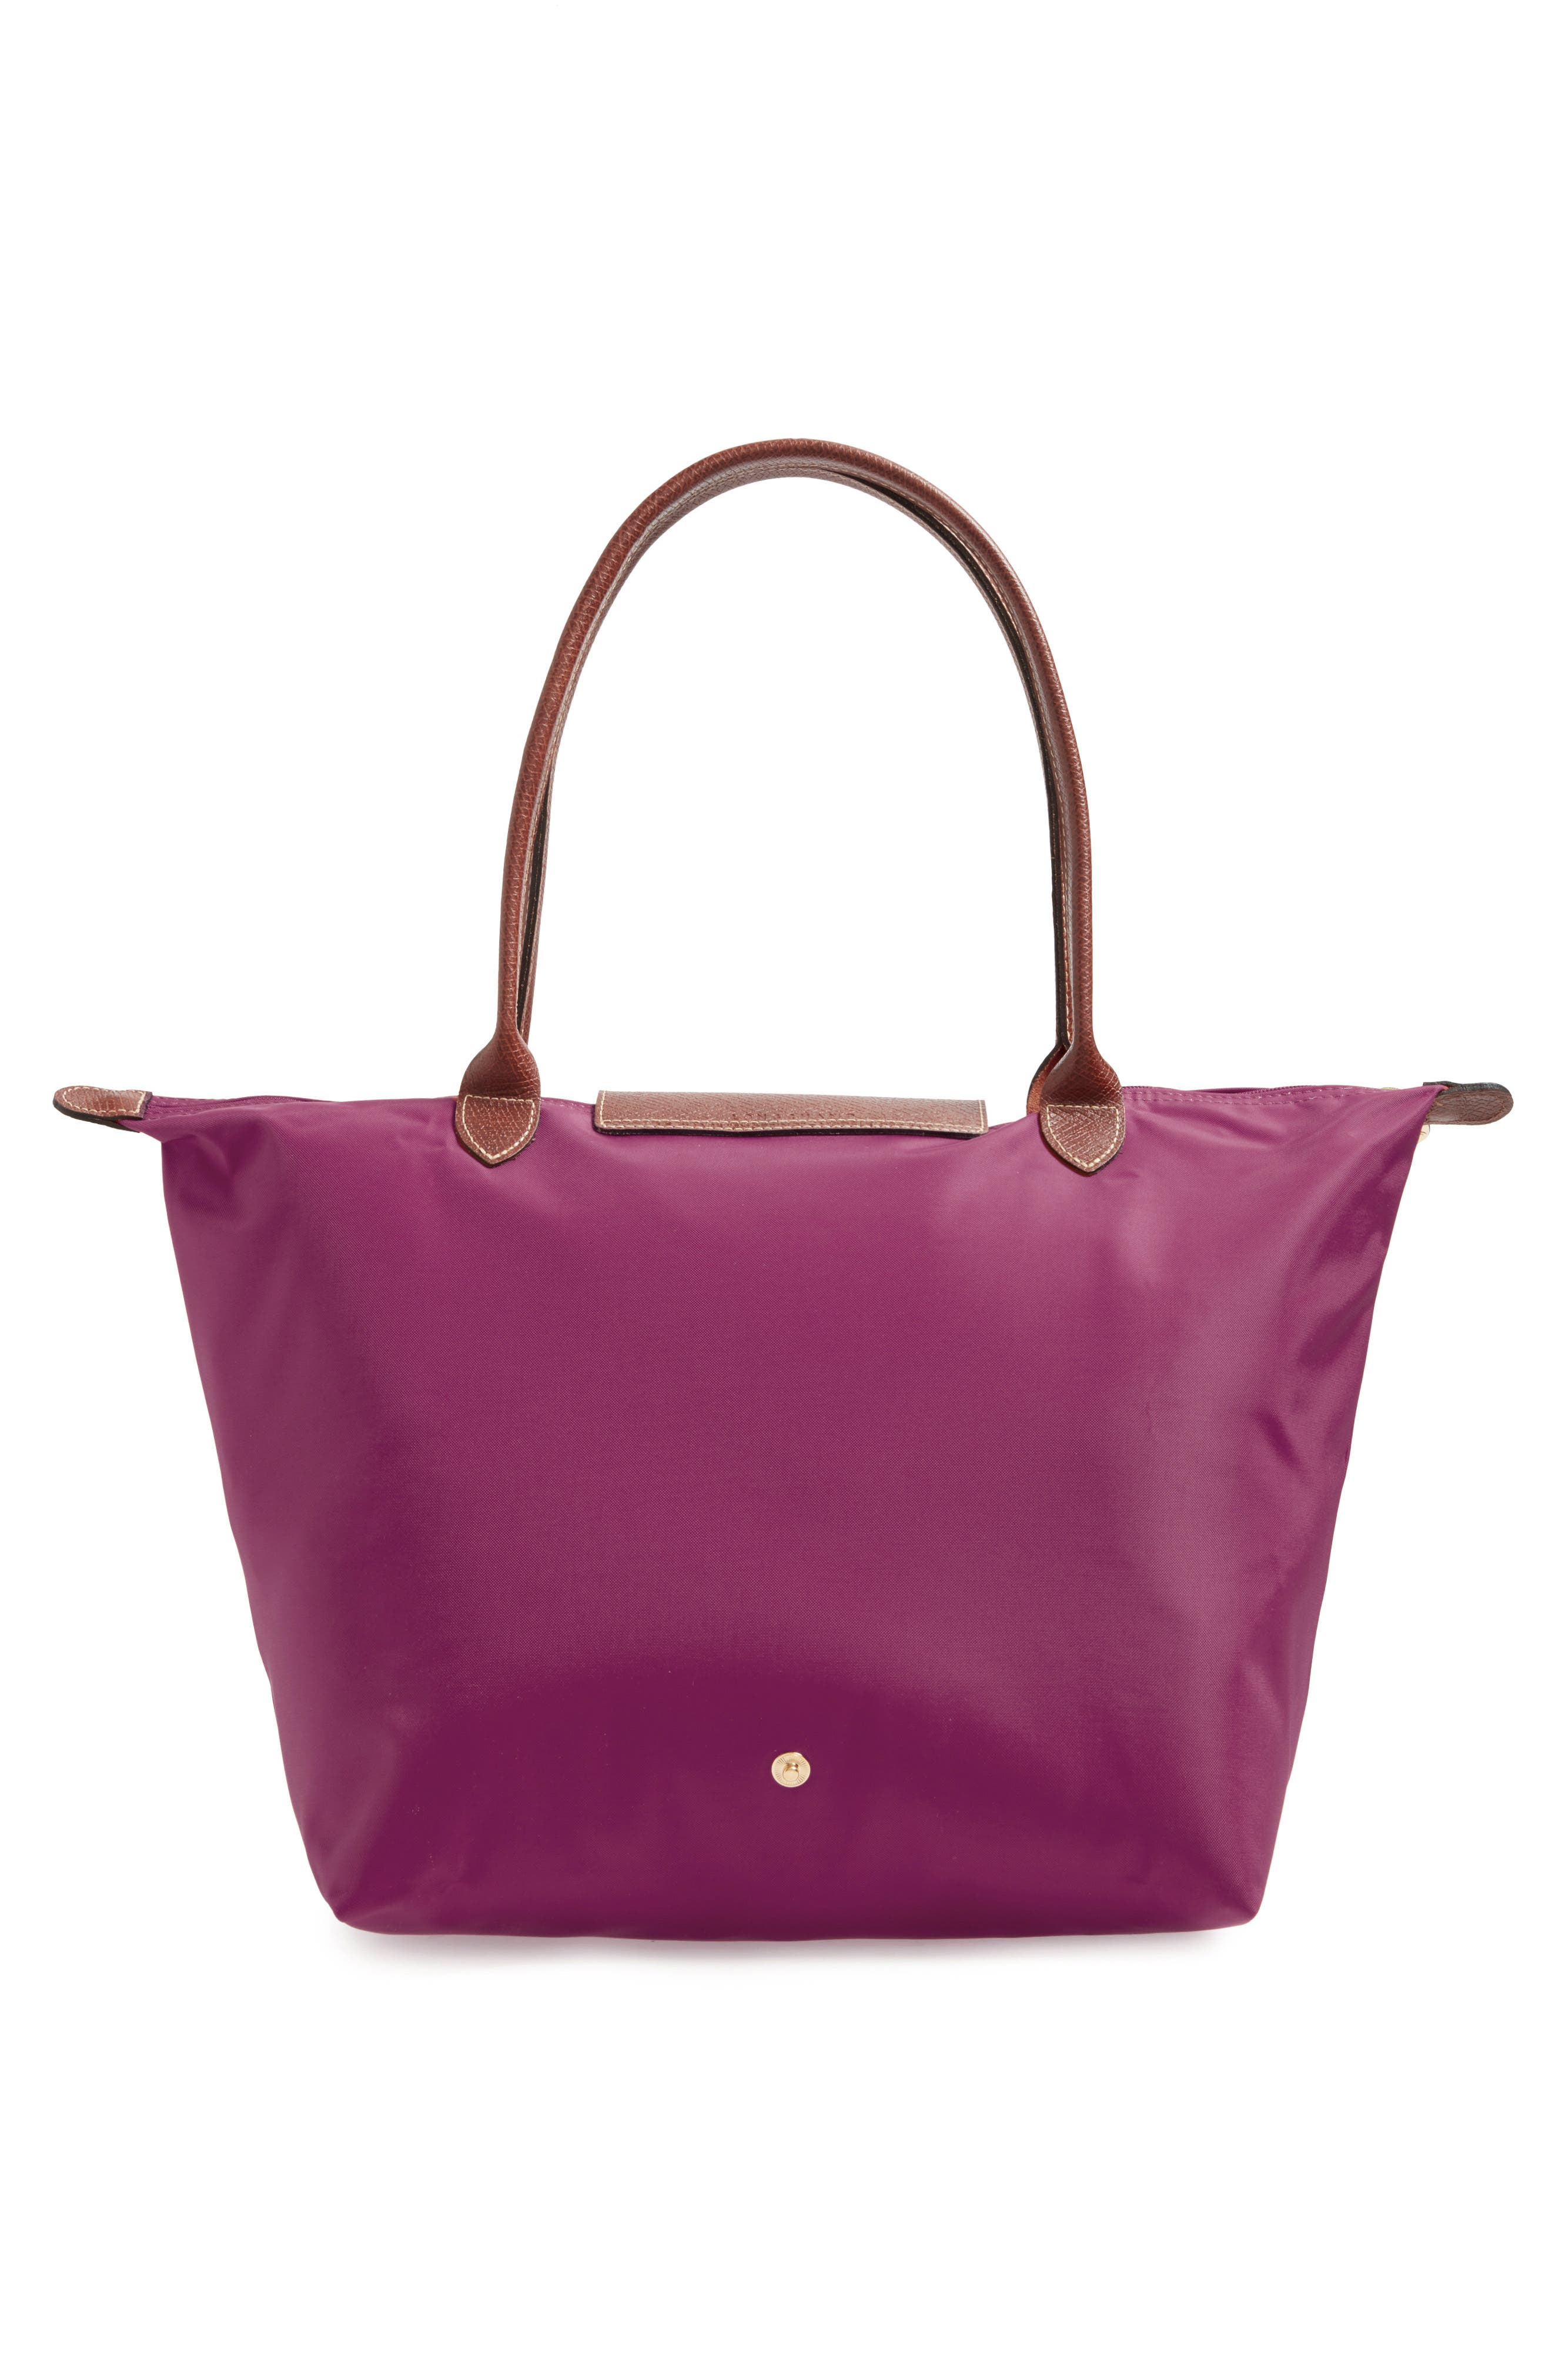 'Large Le Pliage' Tote,                             Alternate thumbnail 5, color,                             Dahlia